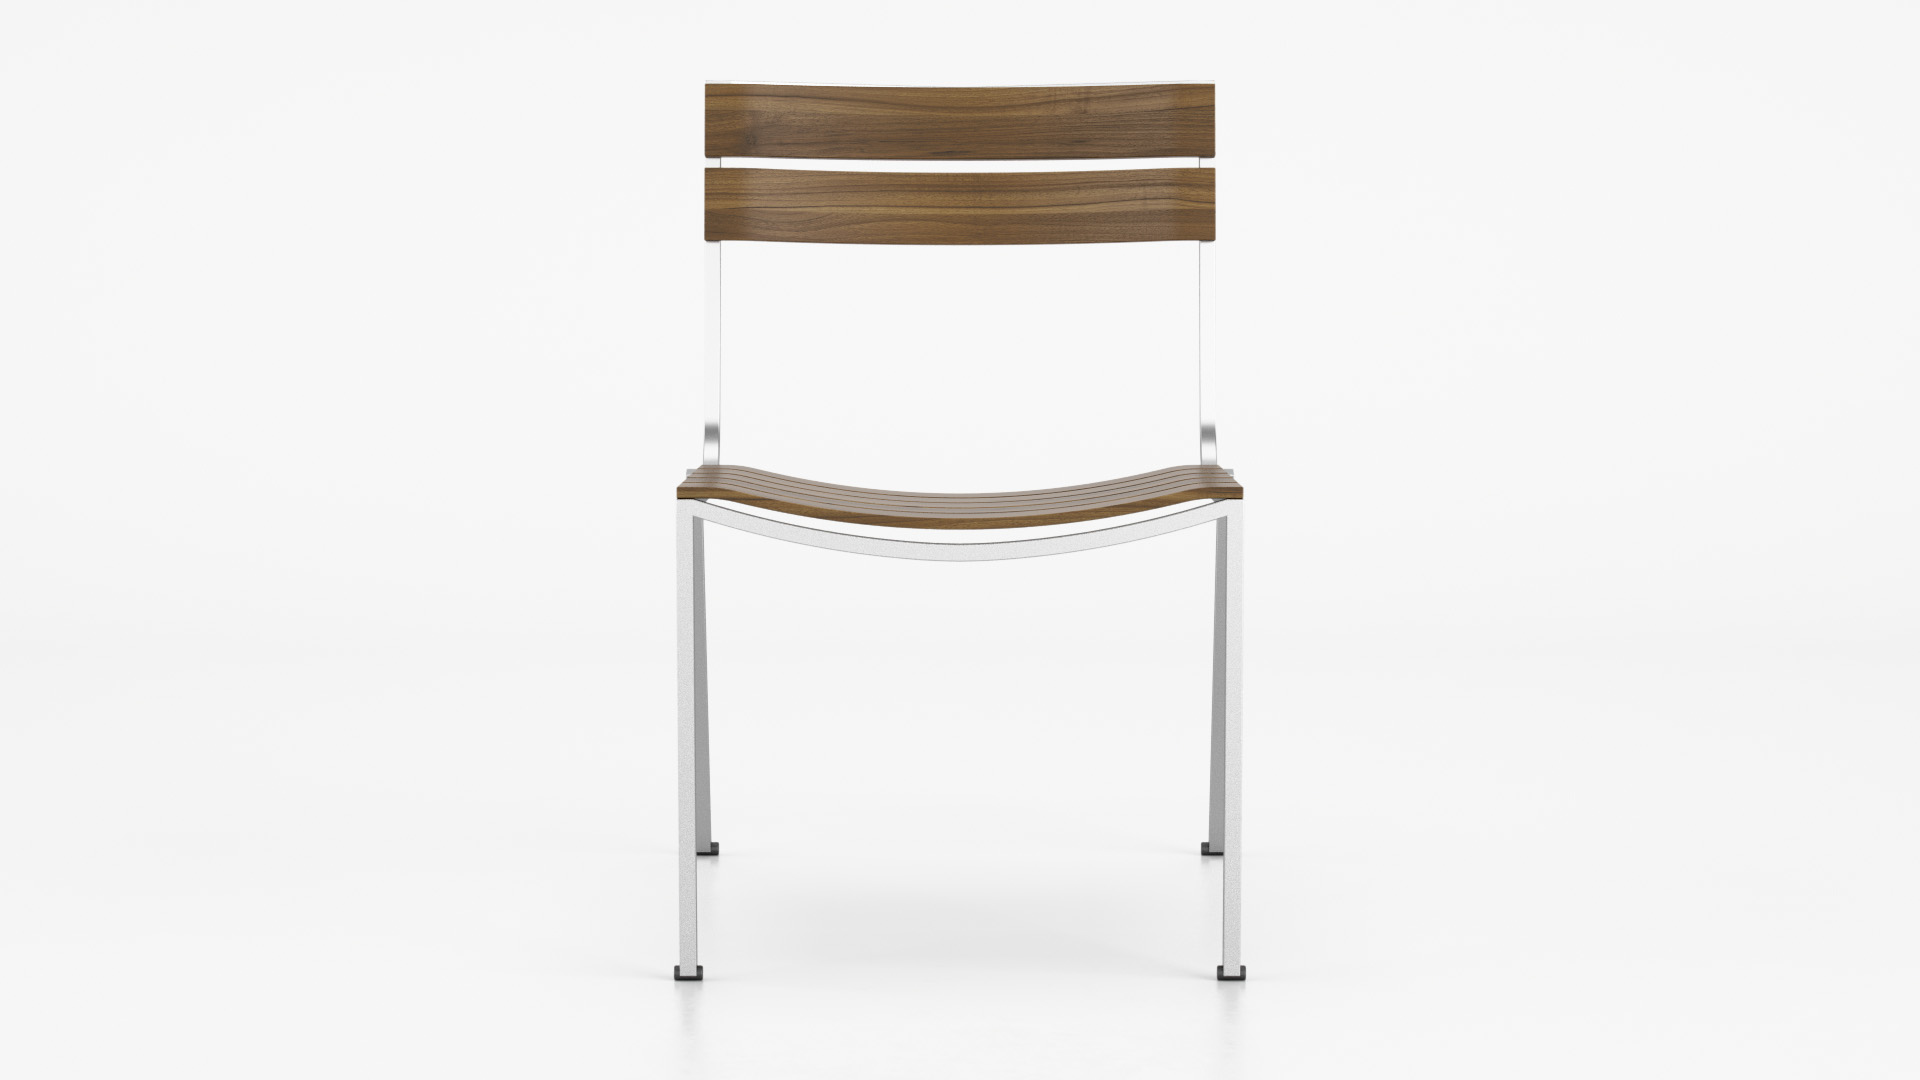 Coro_StackingChair_S05_WhiteSet_01_0002